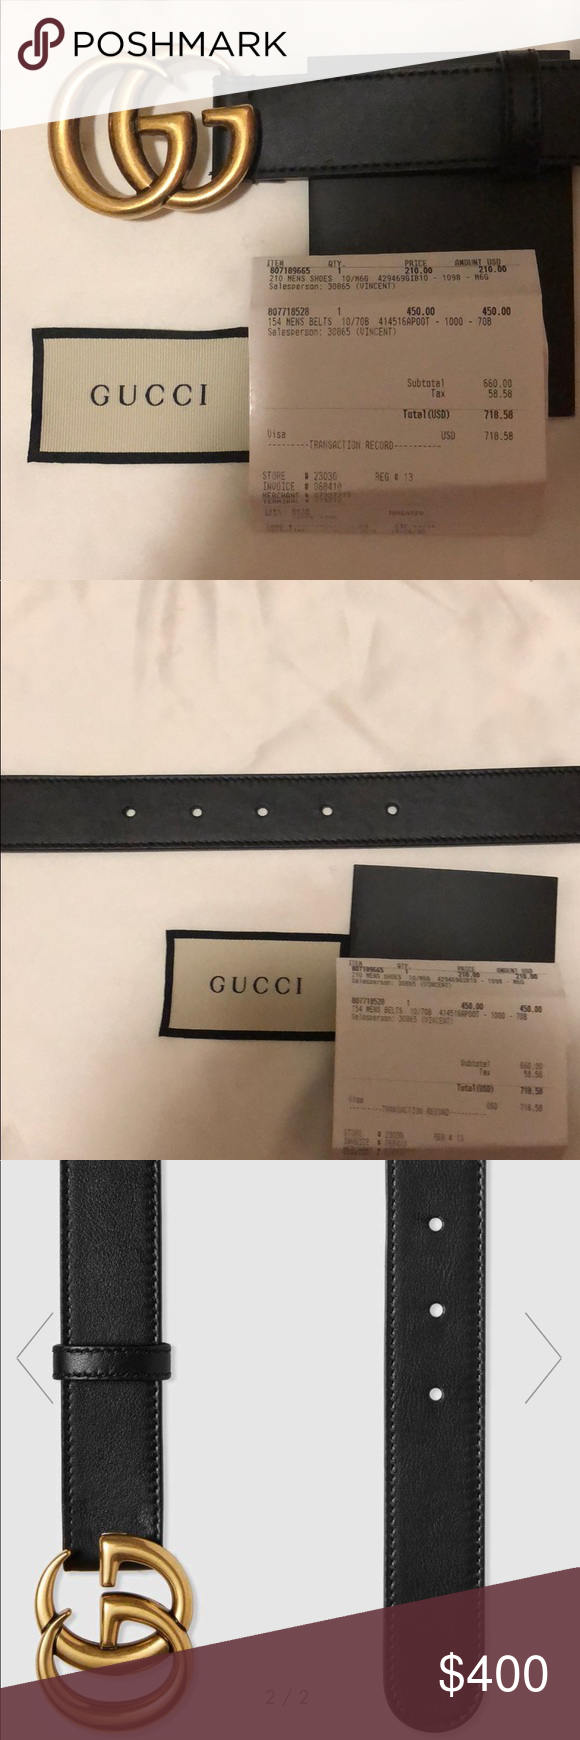 8105180af Gucci 1 inch Leather belt with Double G buckle 100% authentic - comes with  receipt and dust bag Purchased on 7/7/18 at fifth avenue - No flaws at all  ...